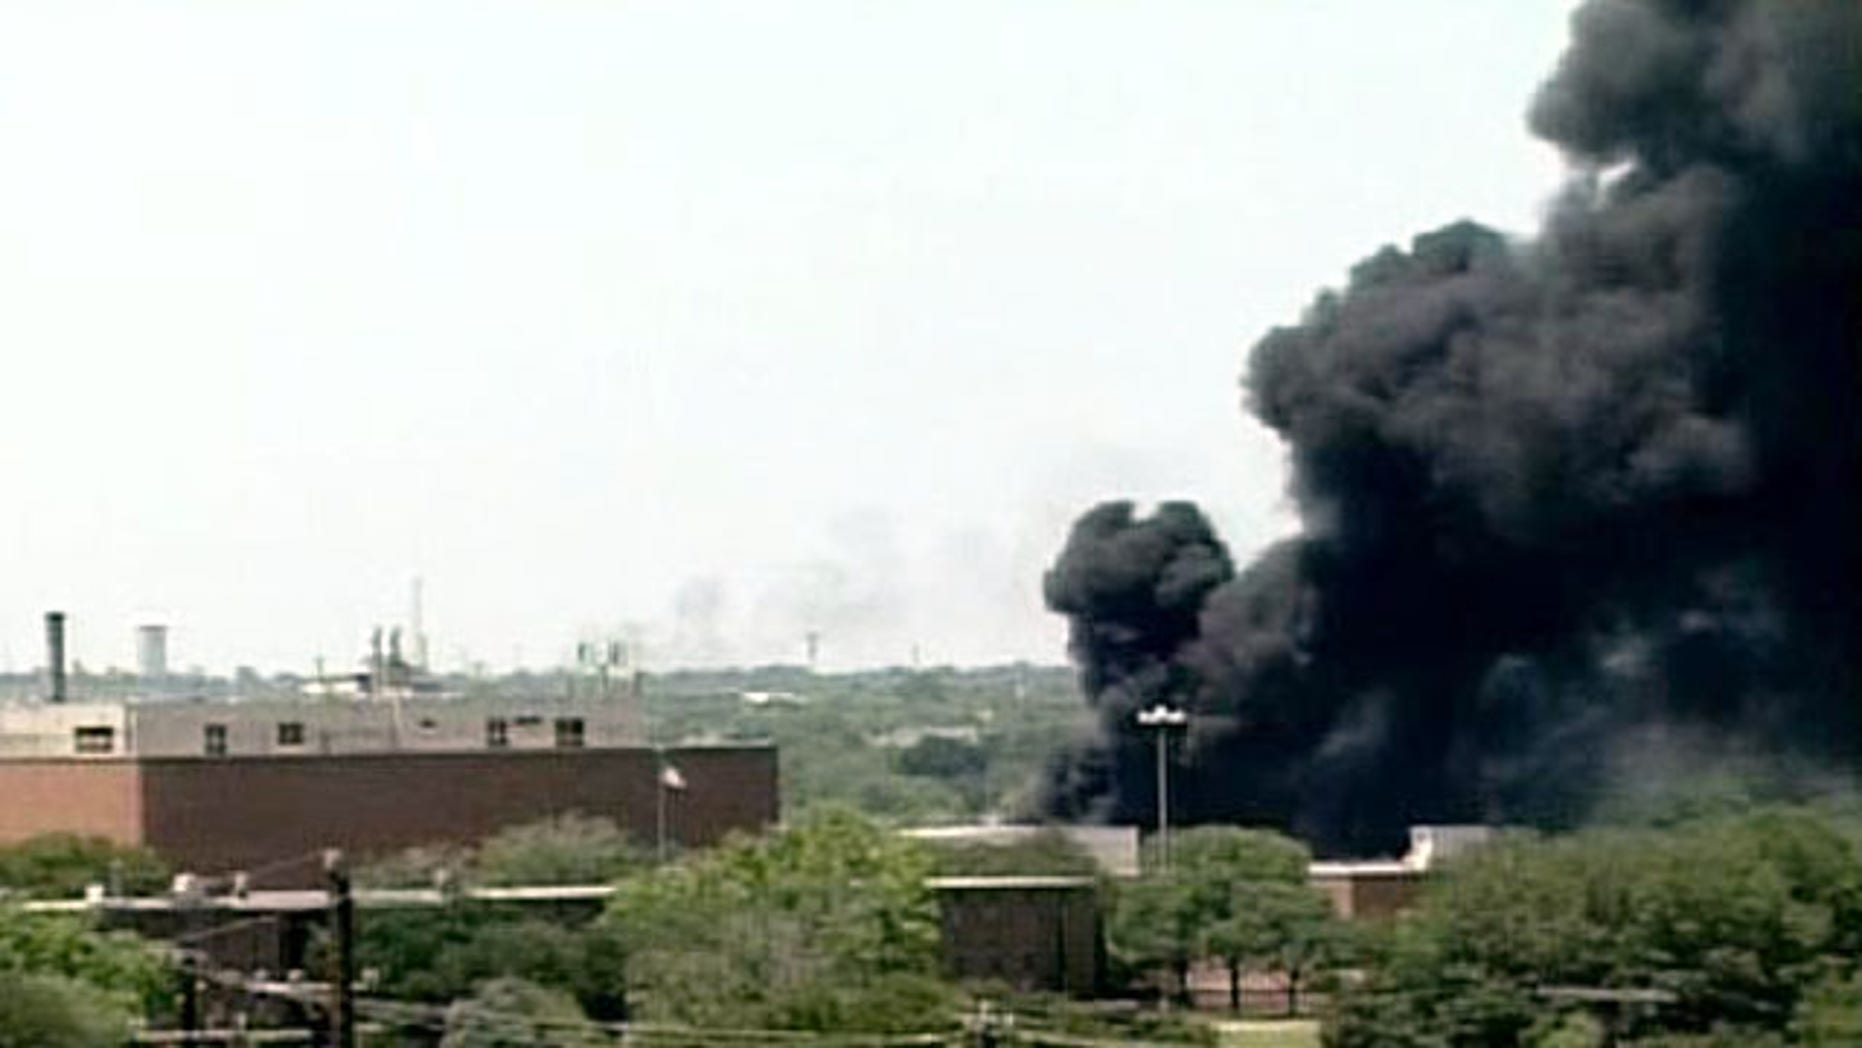 May 5: Plumes of smoke rise over San Antonio after truck exploded at the AGE refinery.